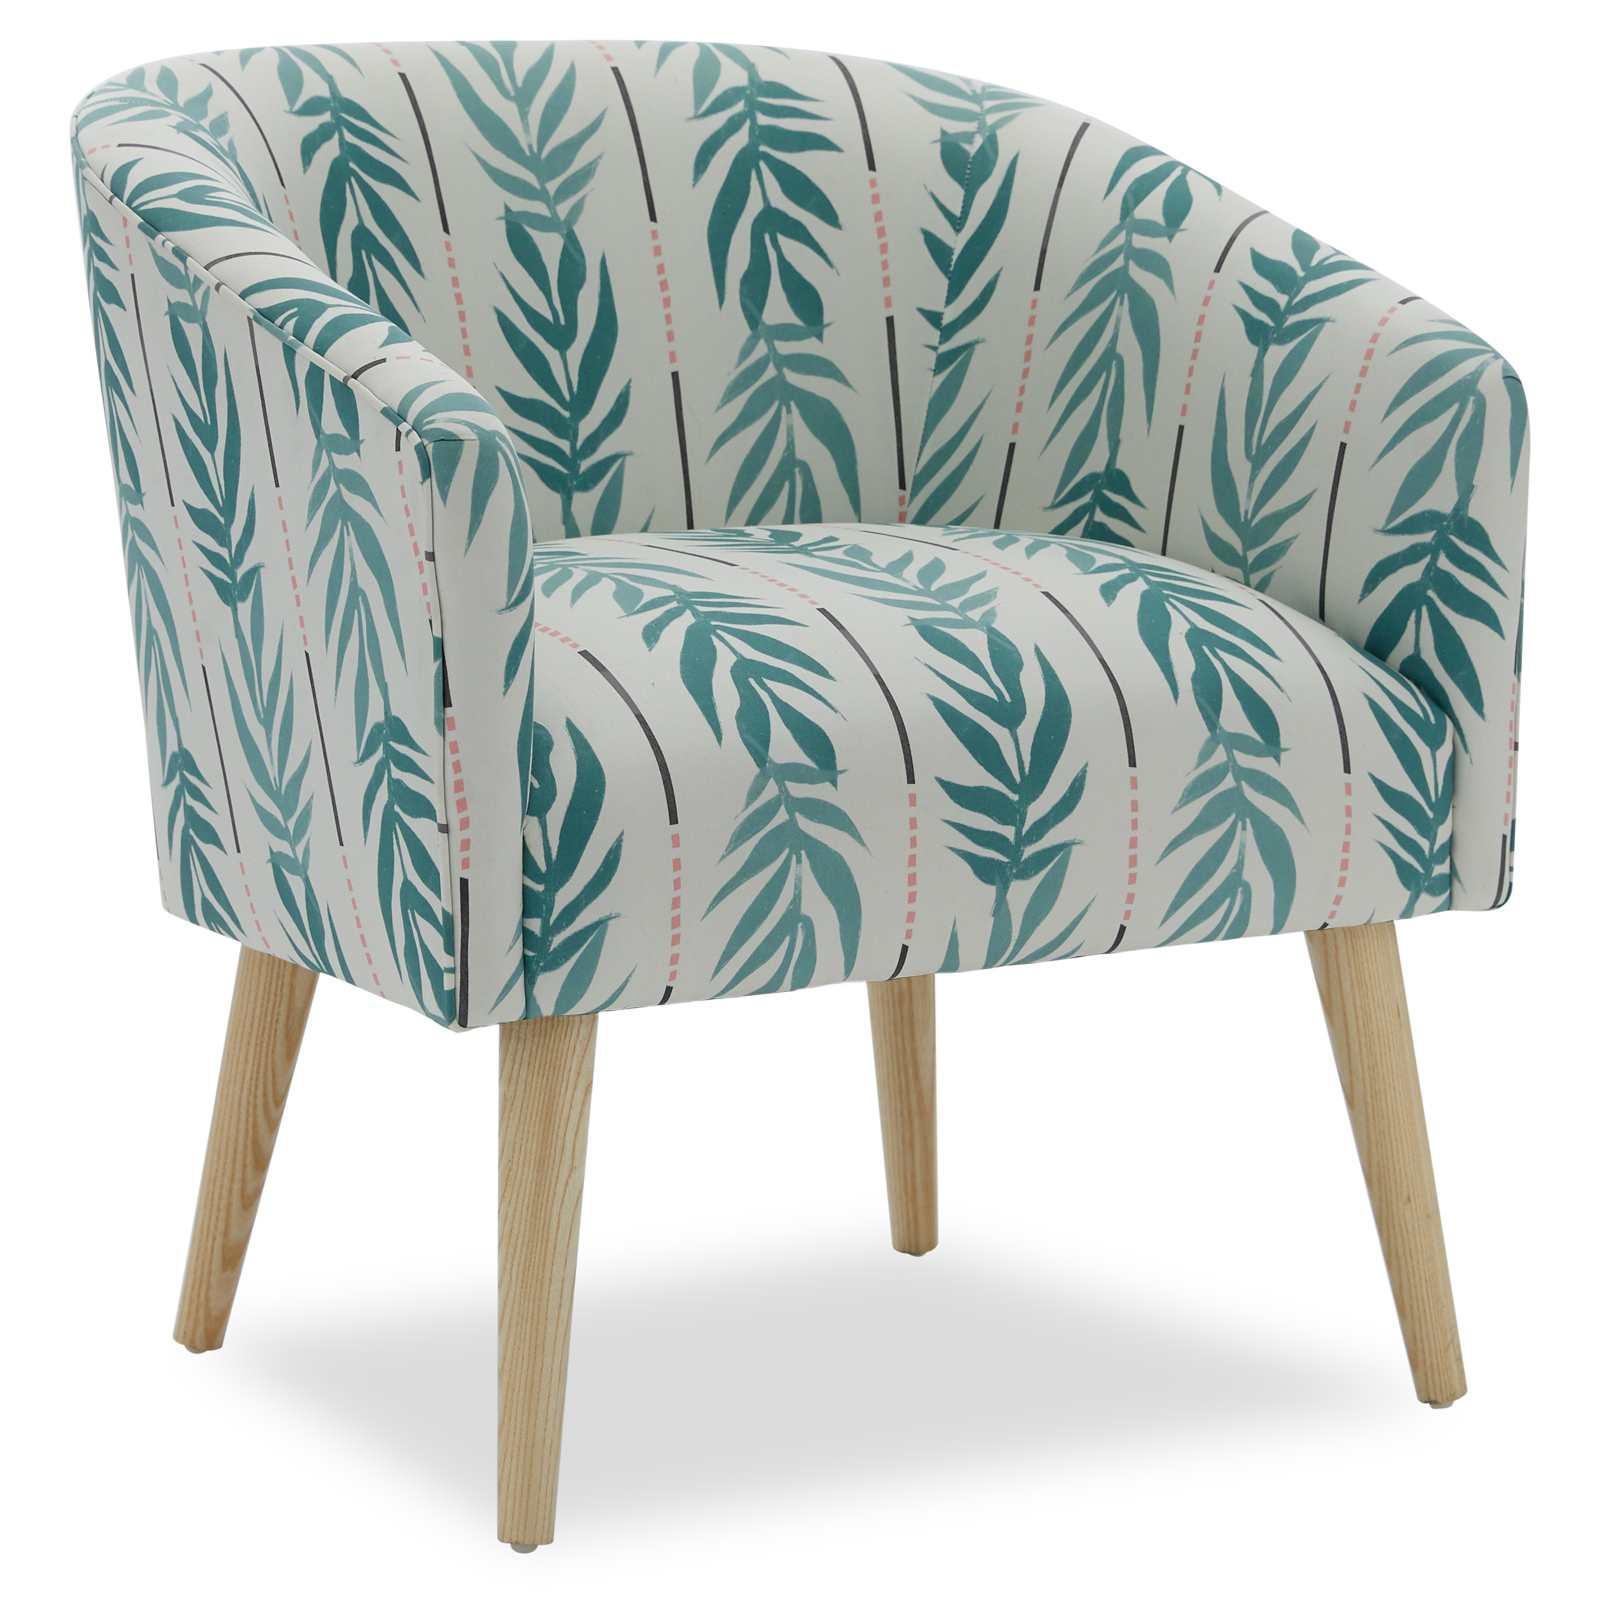 Drew Barrymore Vintage Palm Barrel Accent Chair